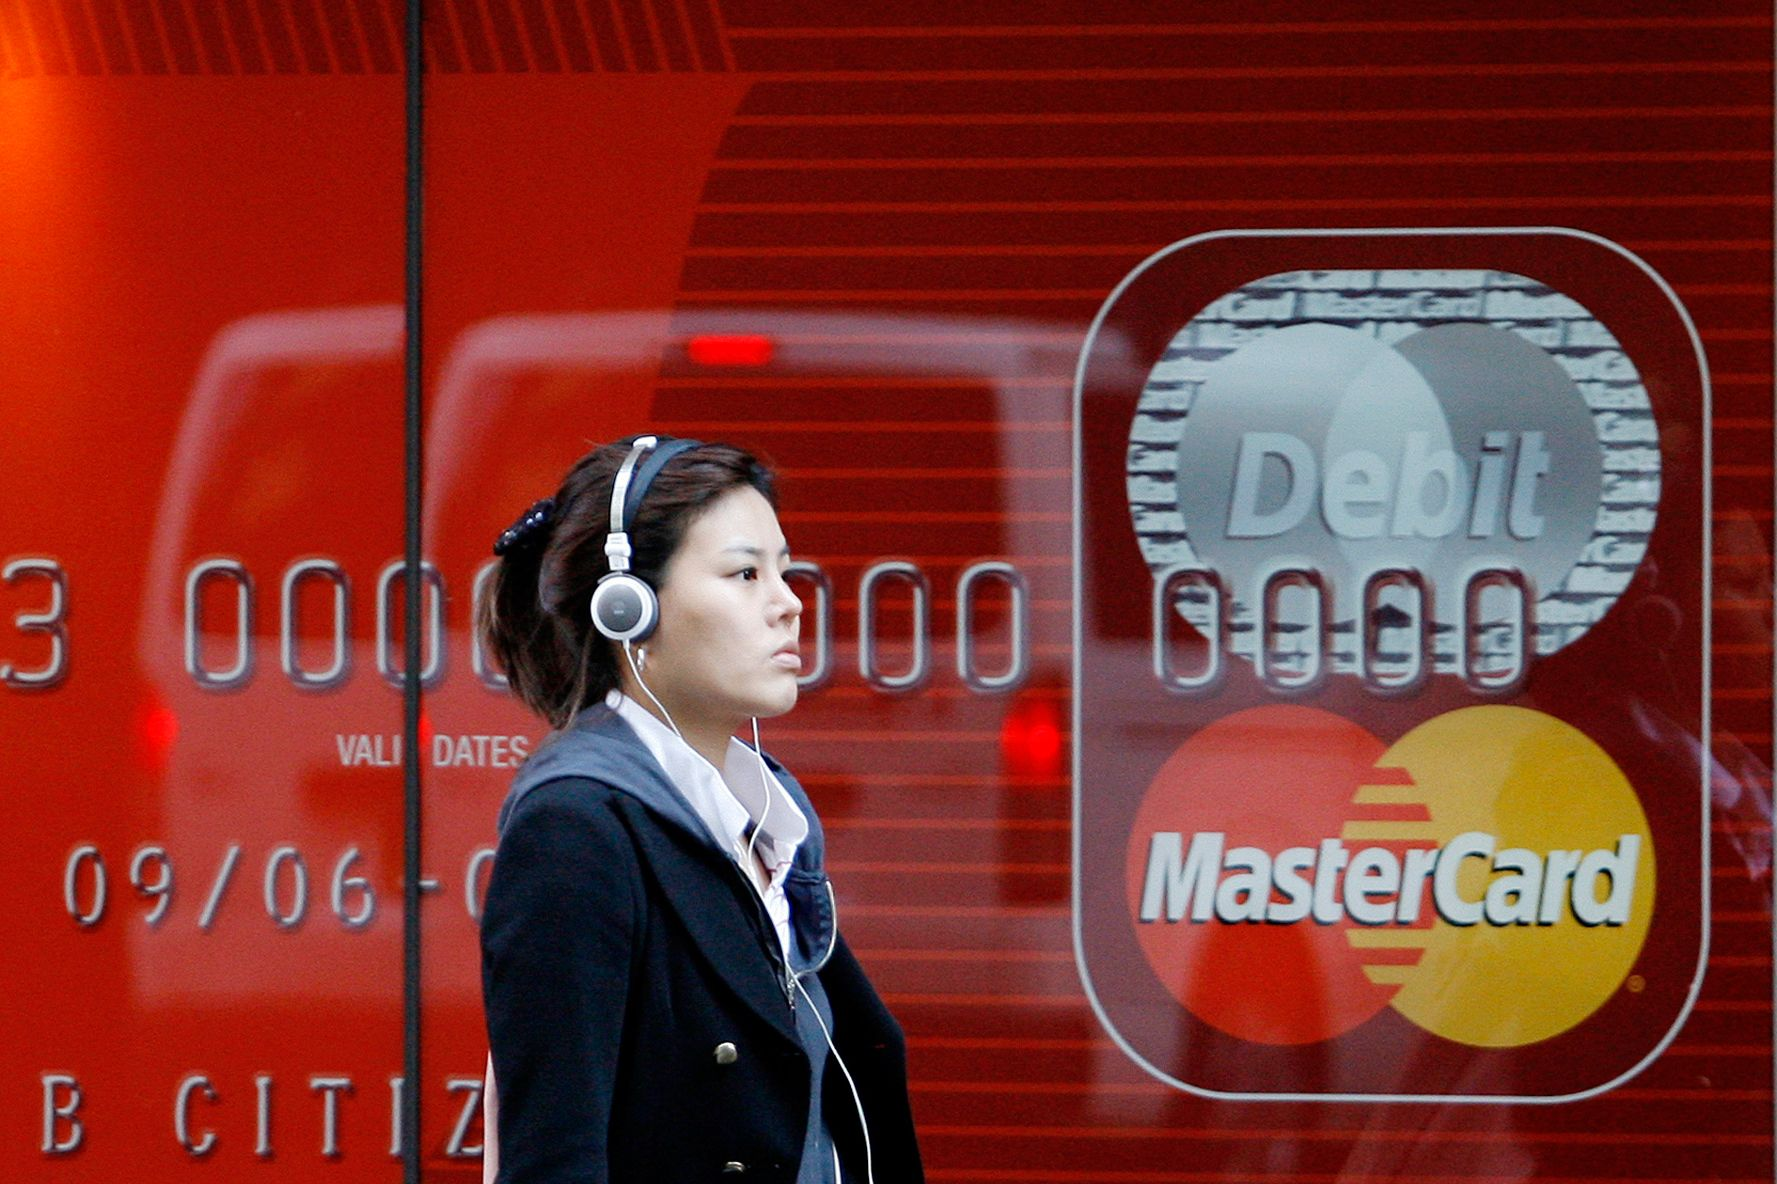 Mastercard slated to report earnings before the bell